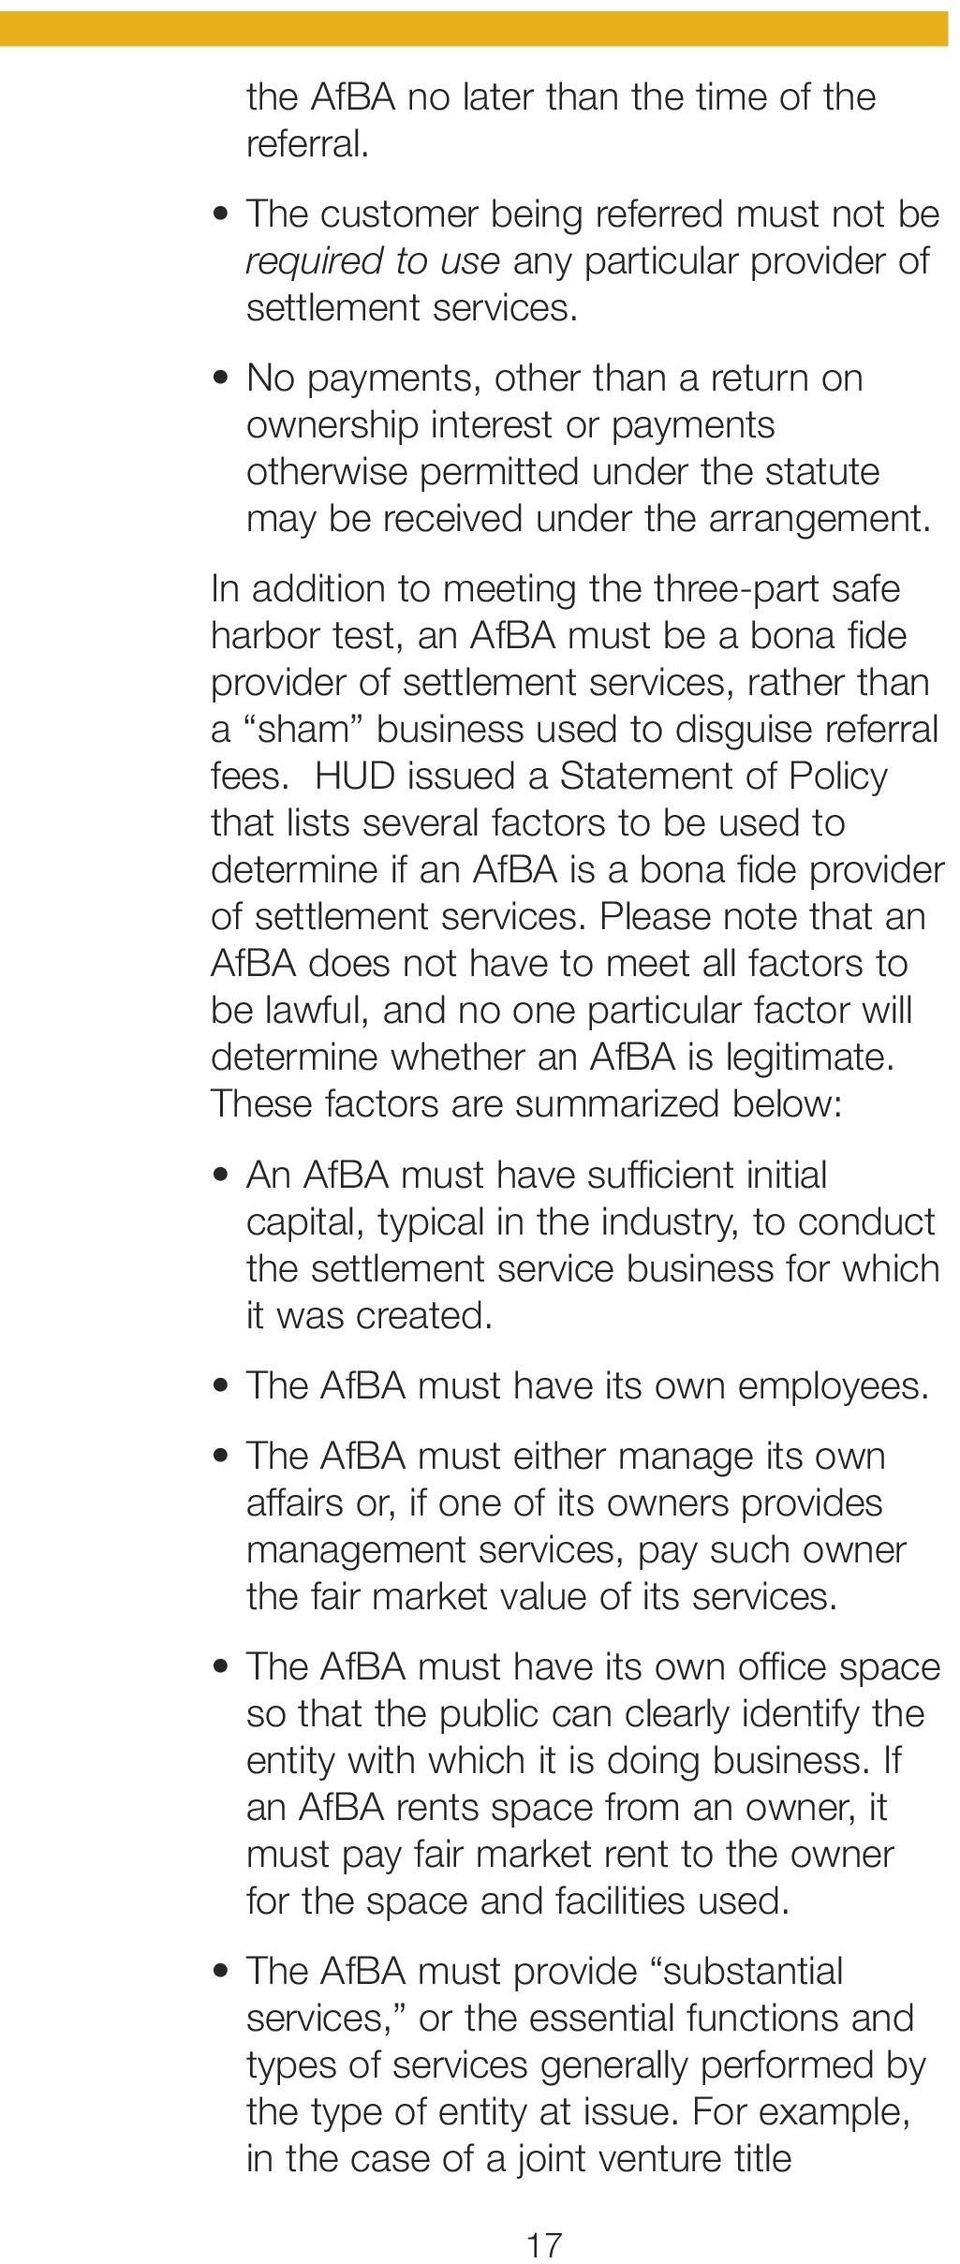 In addition to meeting the three-part safe harbor test, an AfBA must be a bona fide provider of settlement services, rather than a sham business used to disguise referral fees.